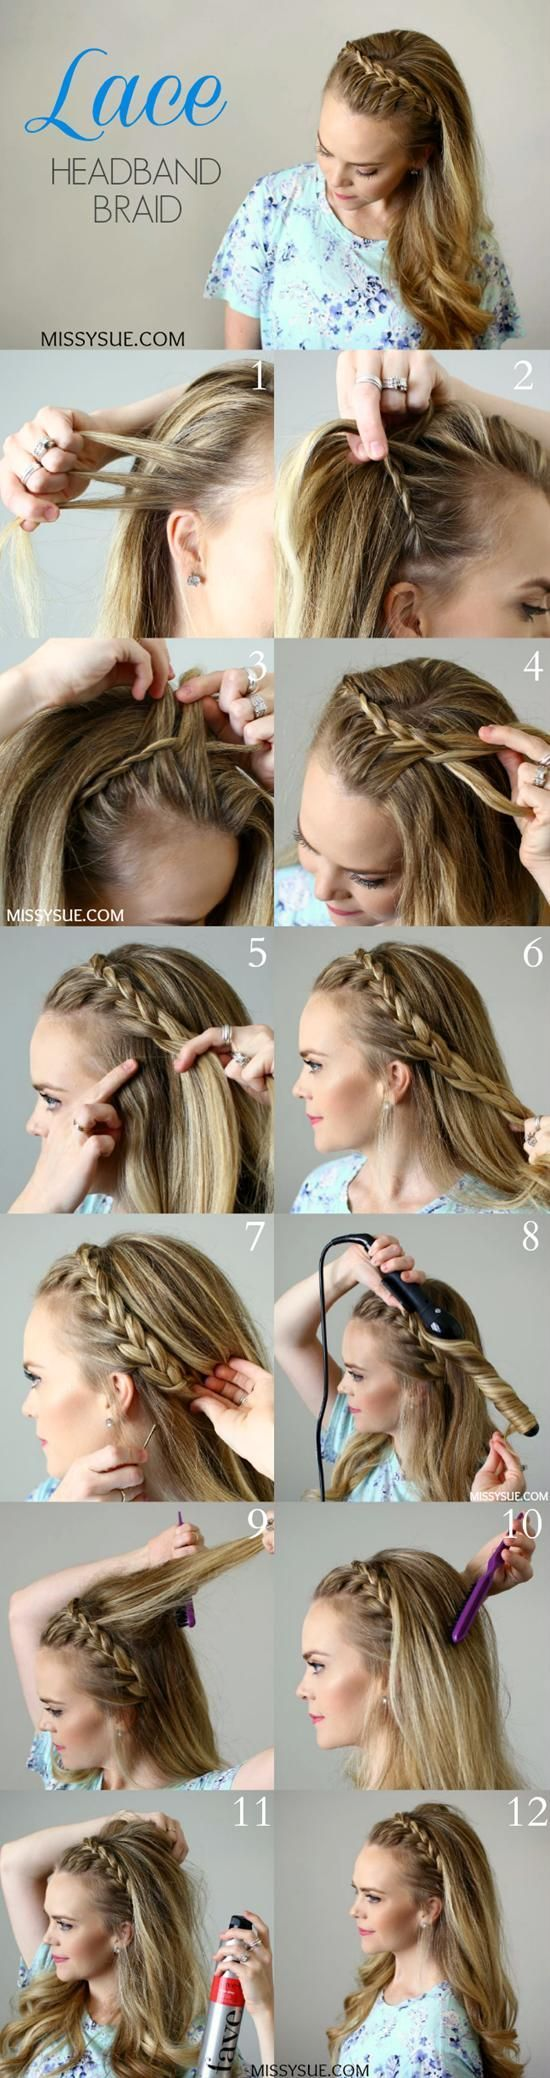 Are you sick of just straightening or curling your hair to make it look glamorous? Then these gorgeous braid tutorials are just for you.